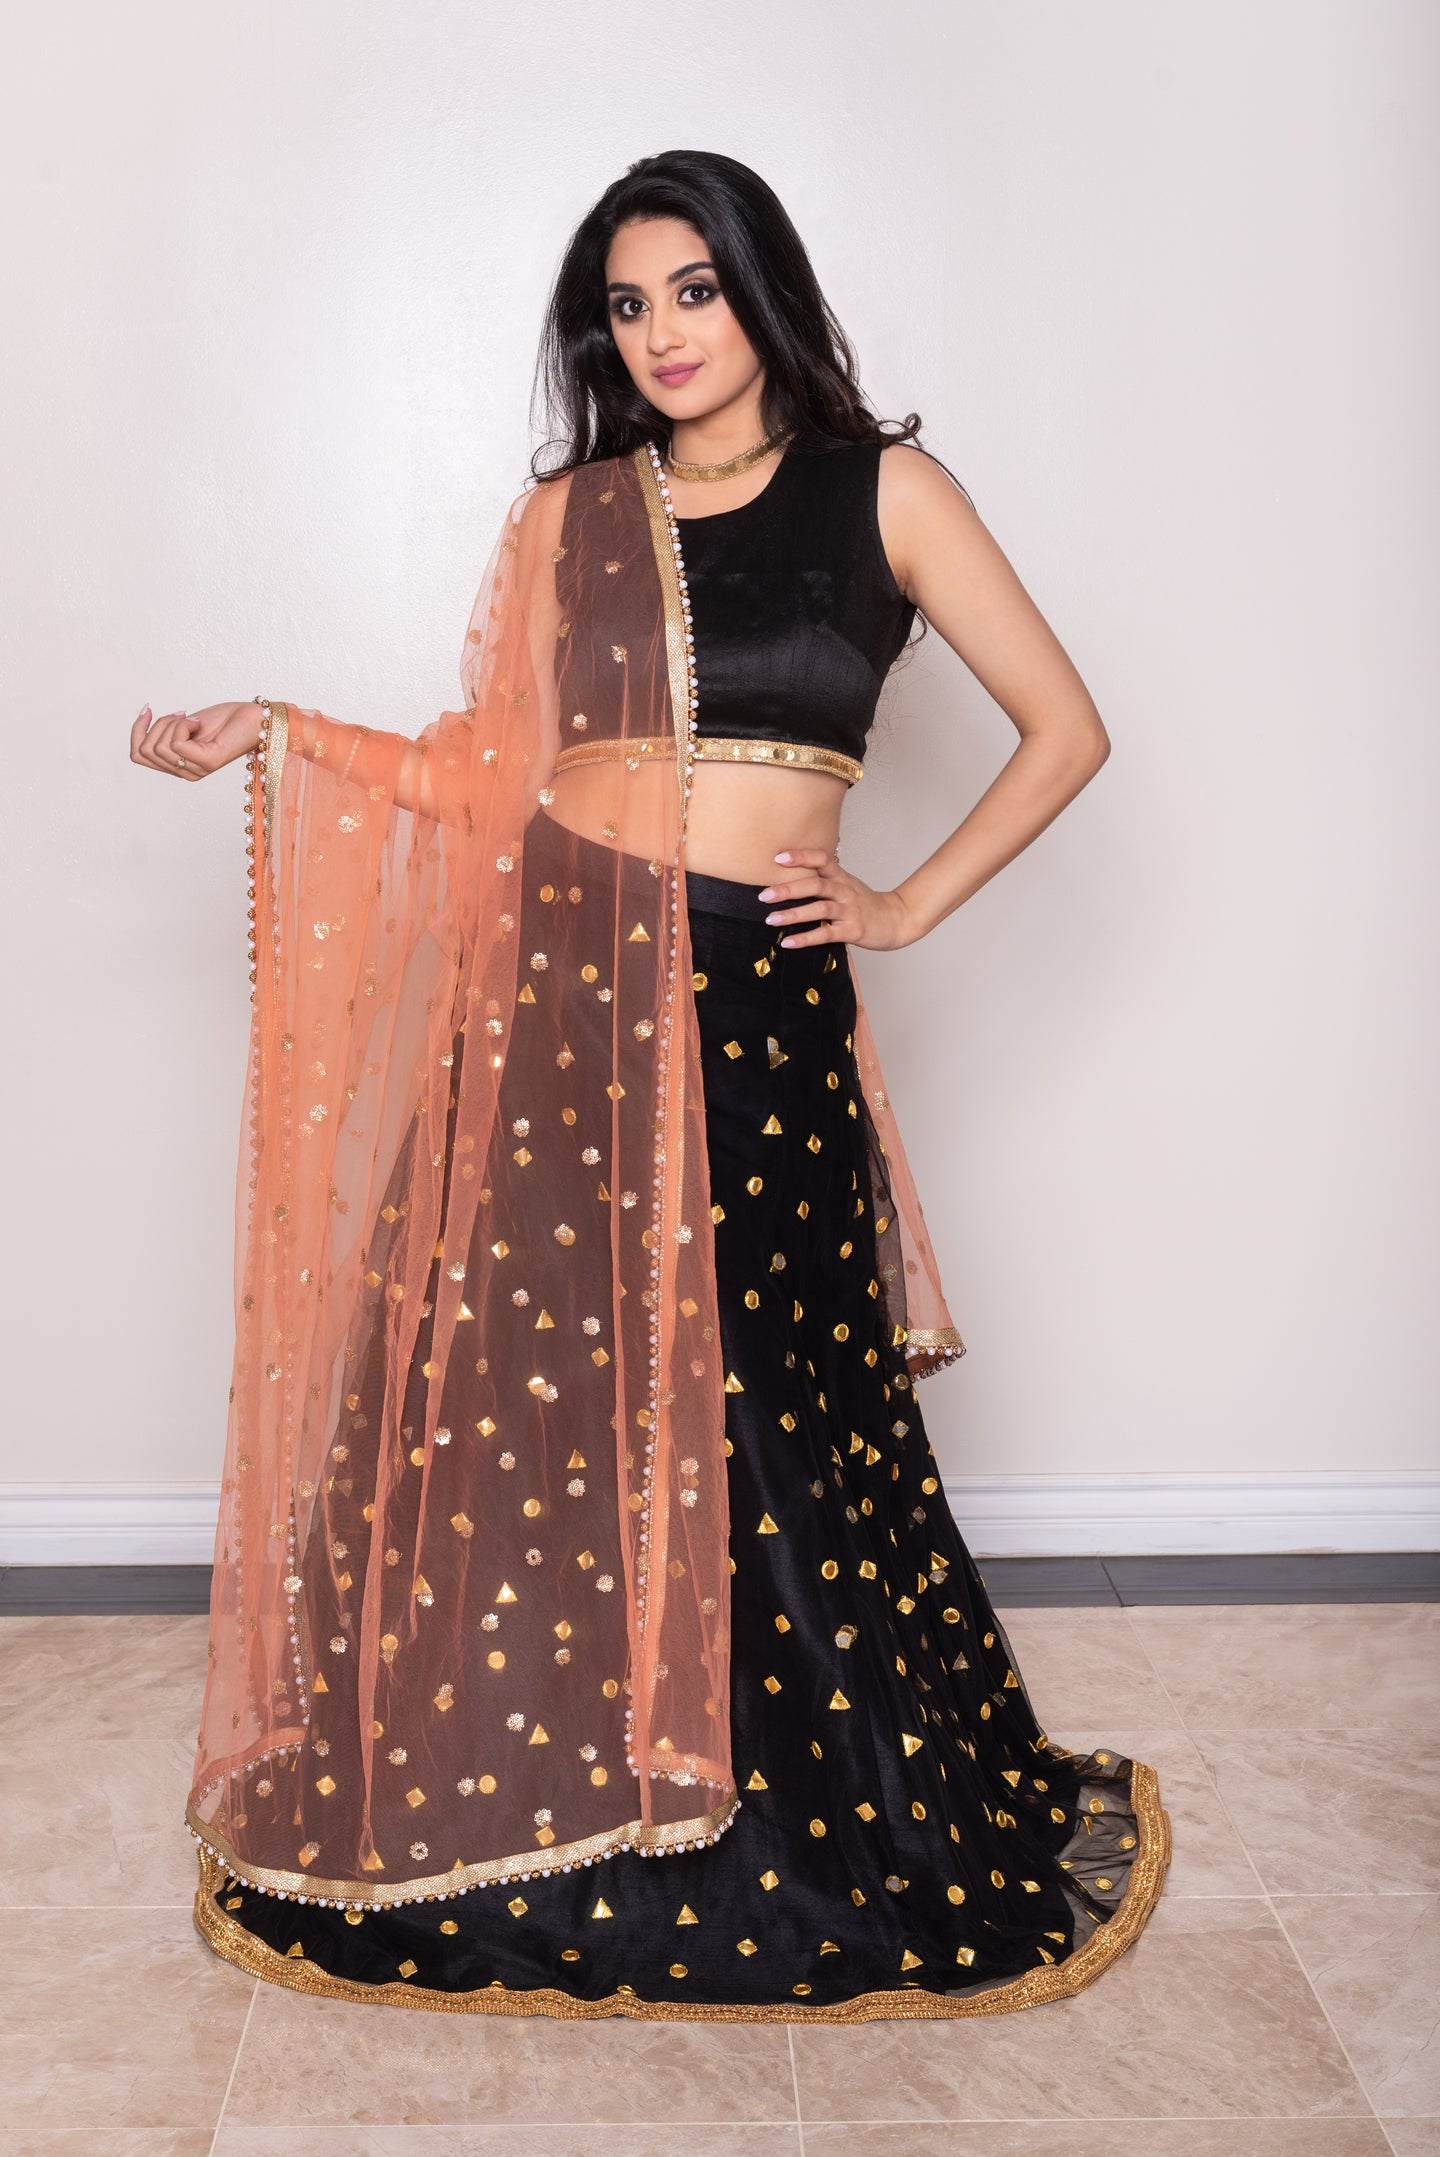 Peach Orange Dupatta